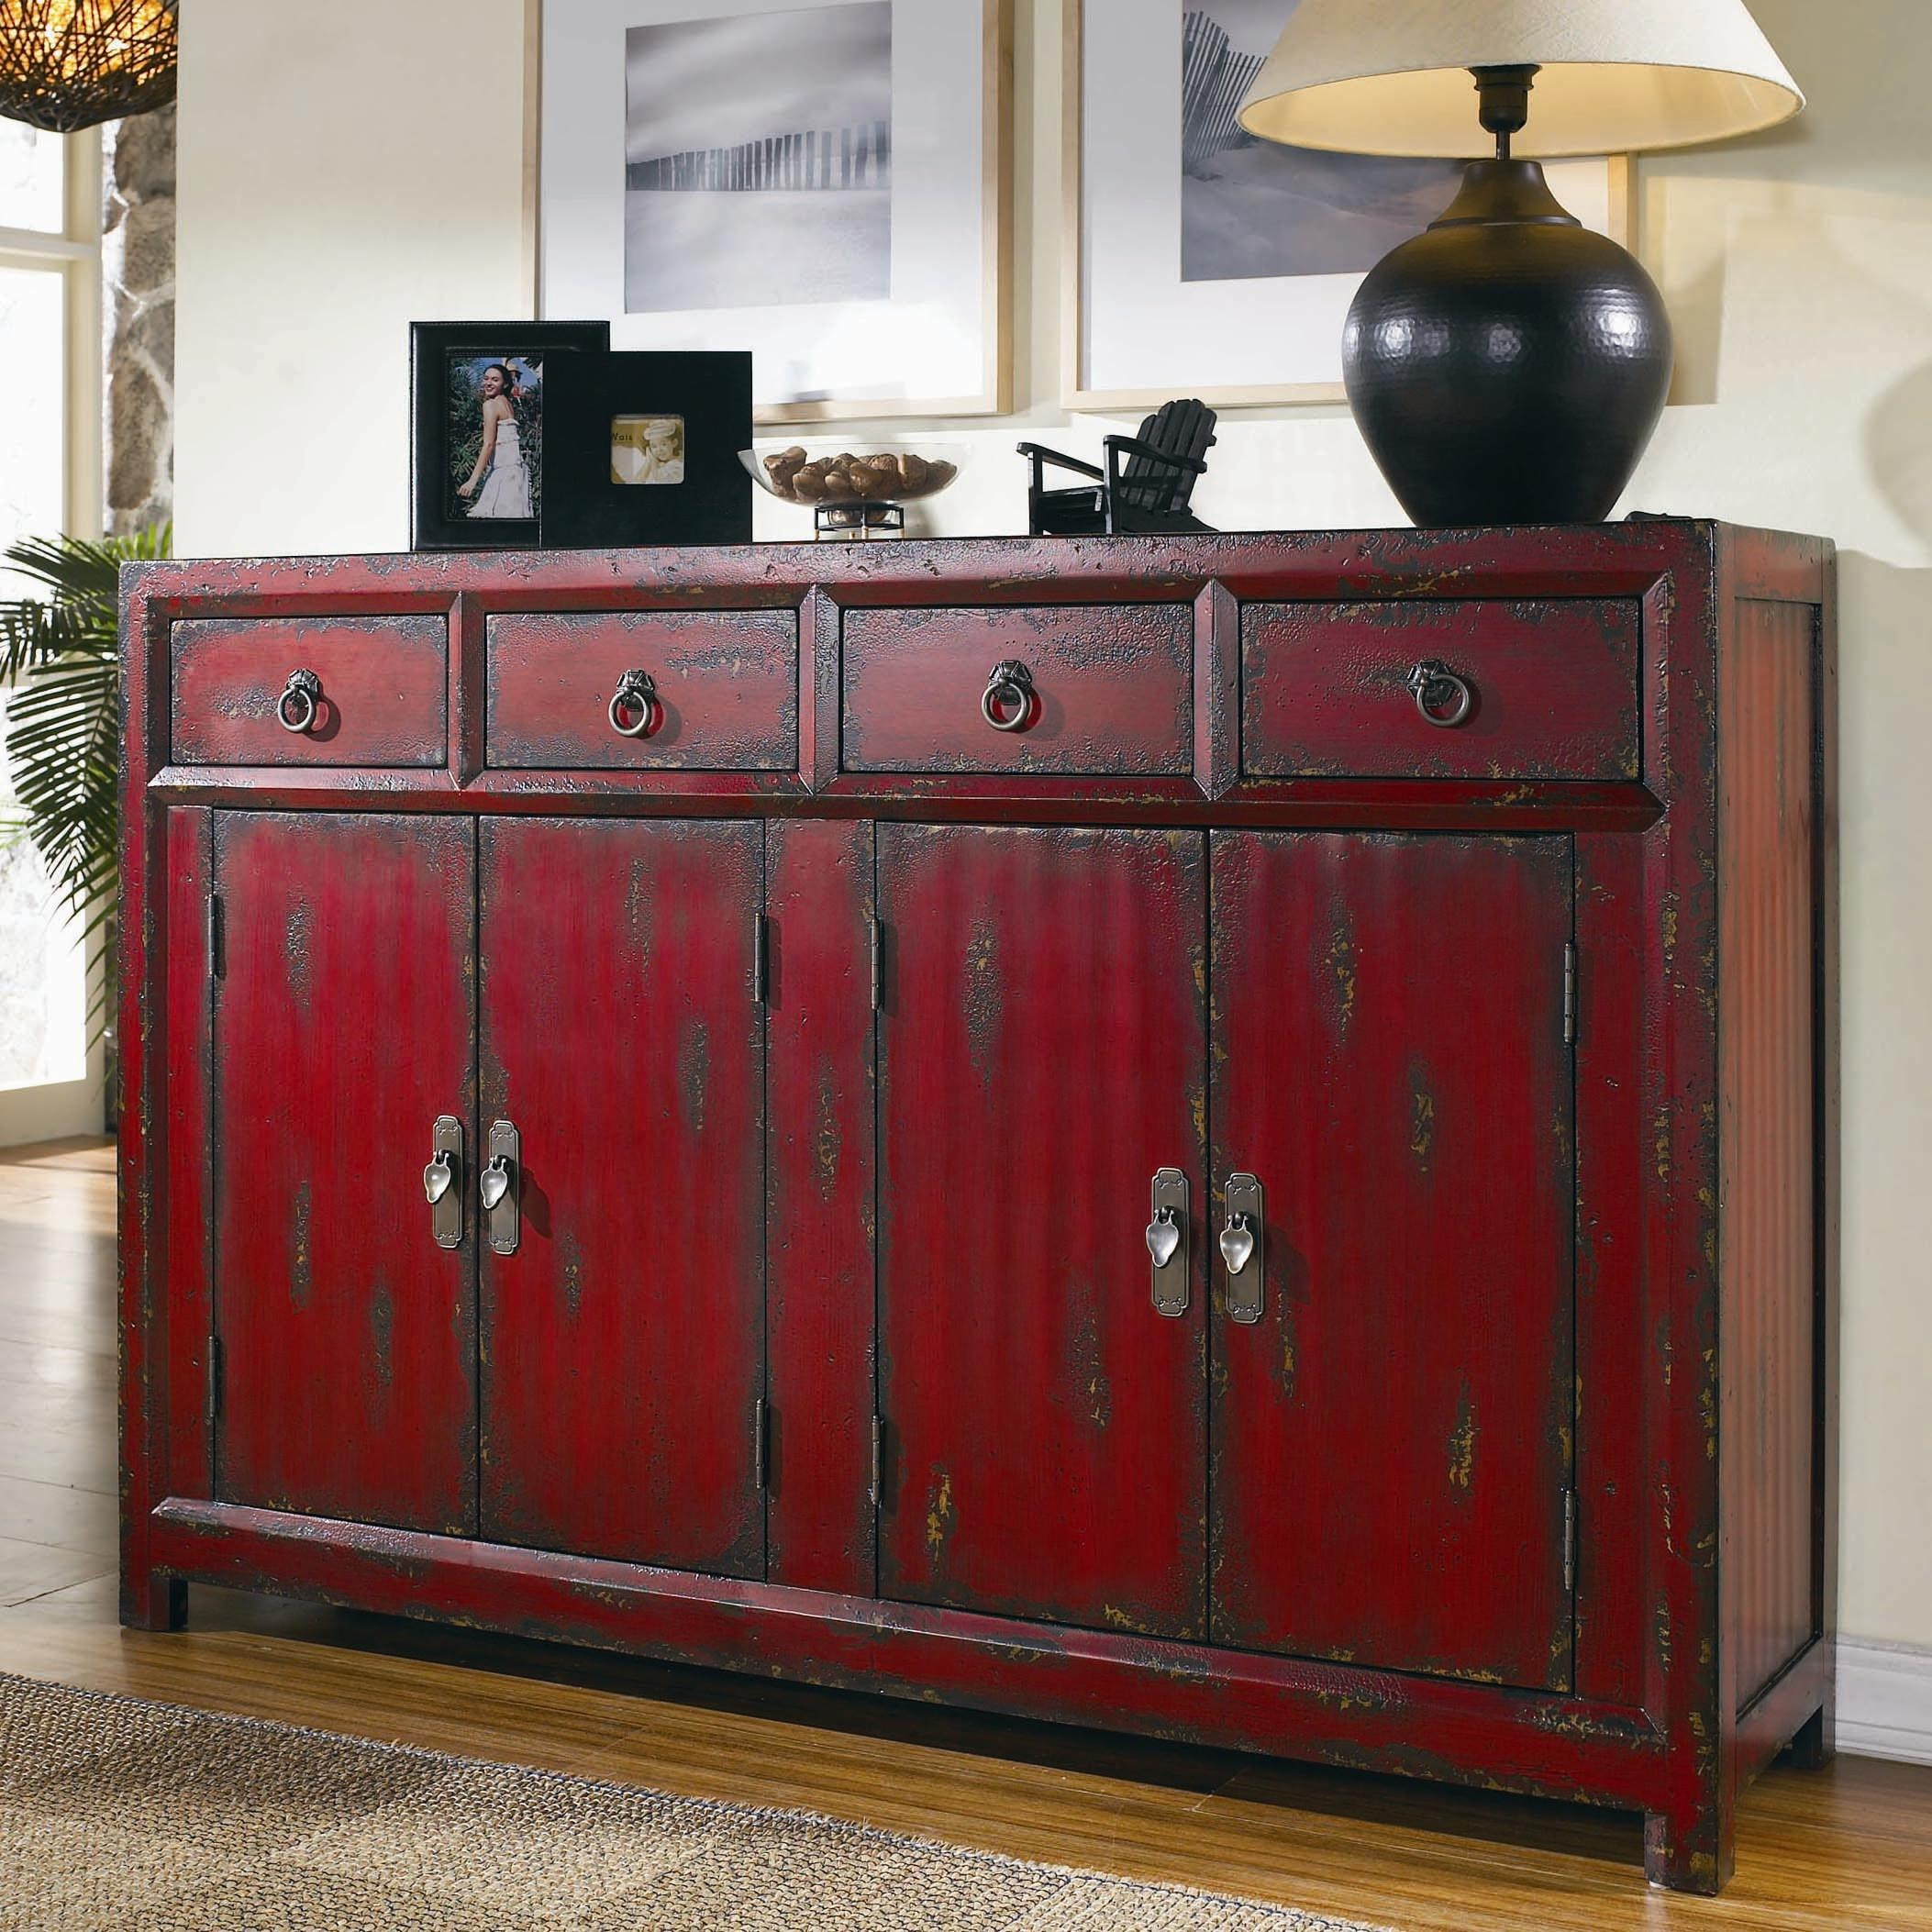 Hooker Furniture Chests And Consoles Red Asian Cabinet   Dunk U0026 Bright  Furniture   Occasional Cabinet